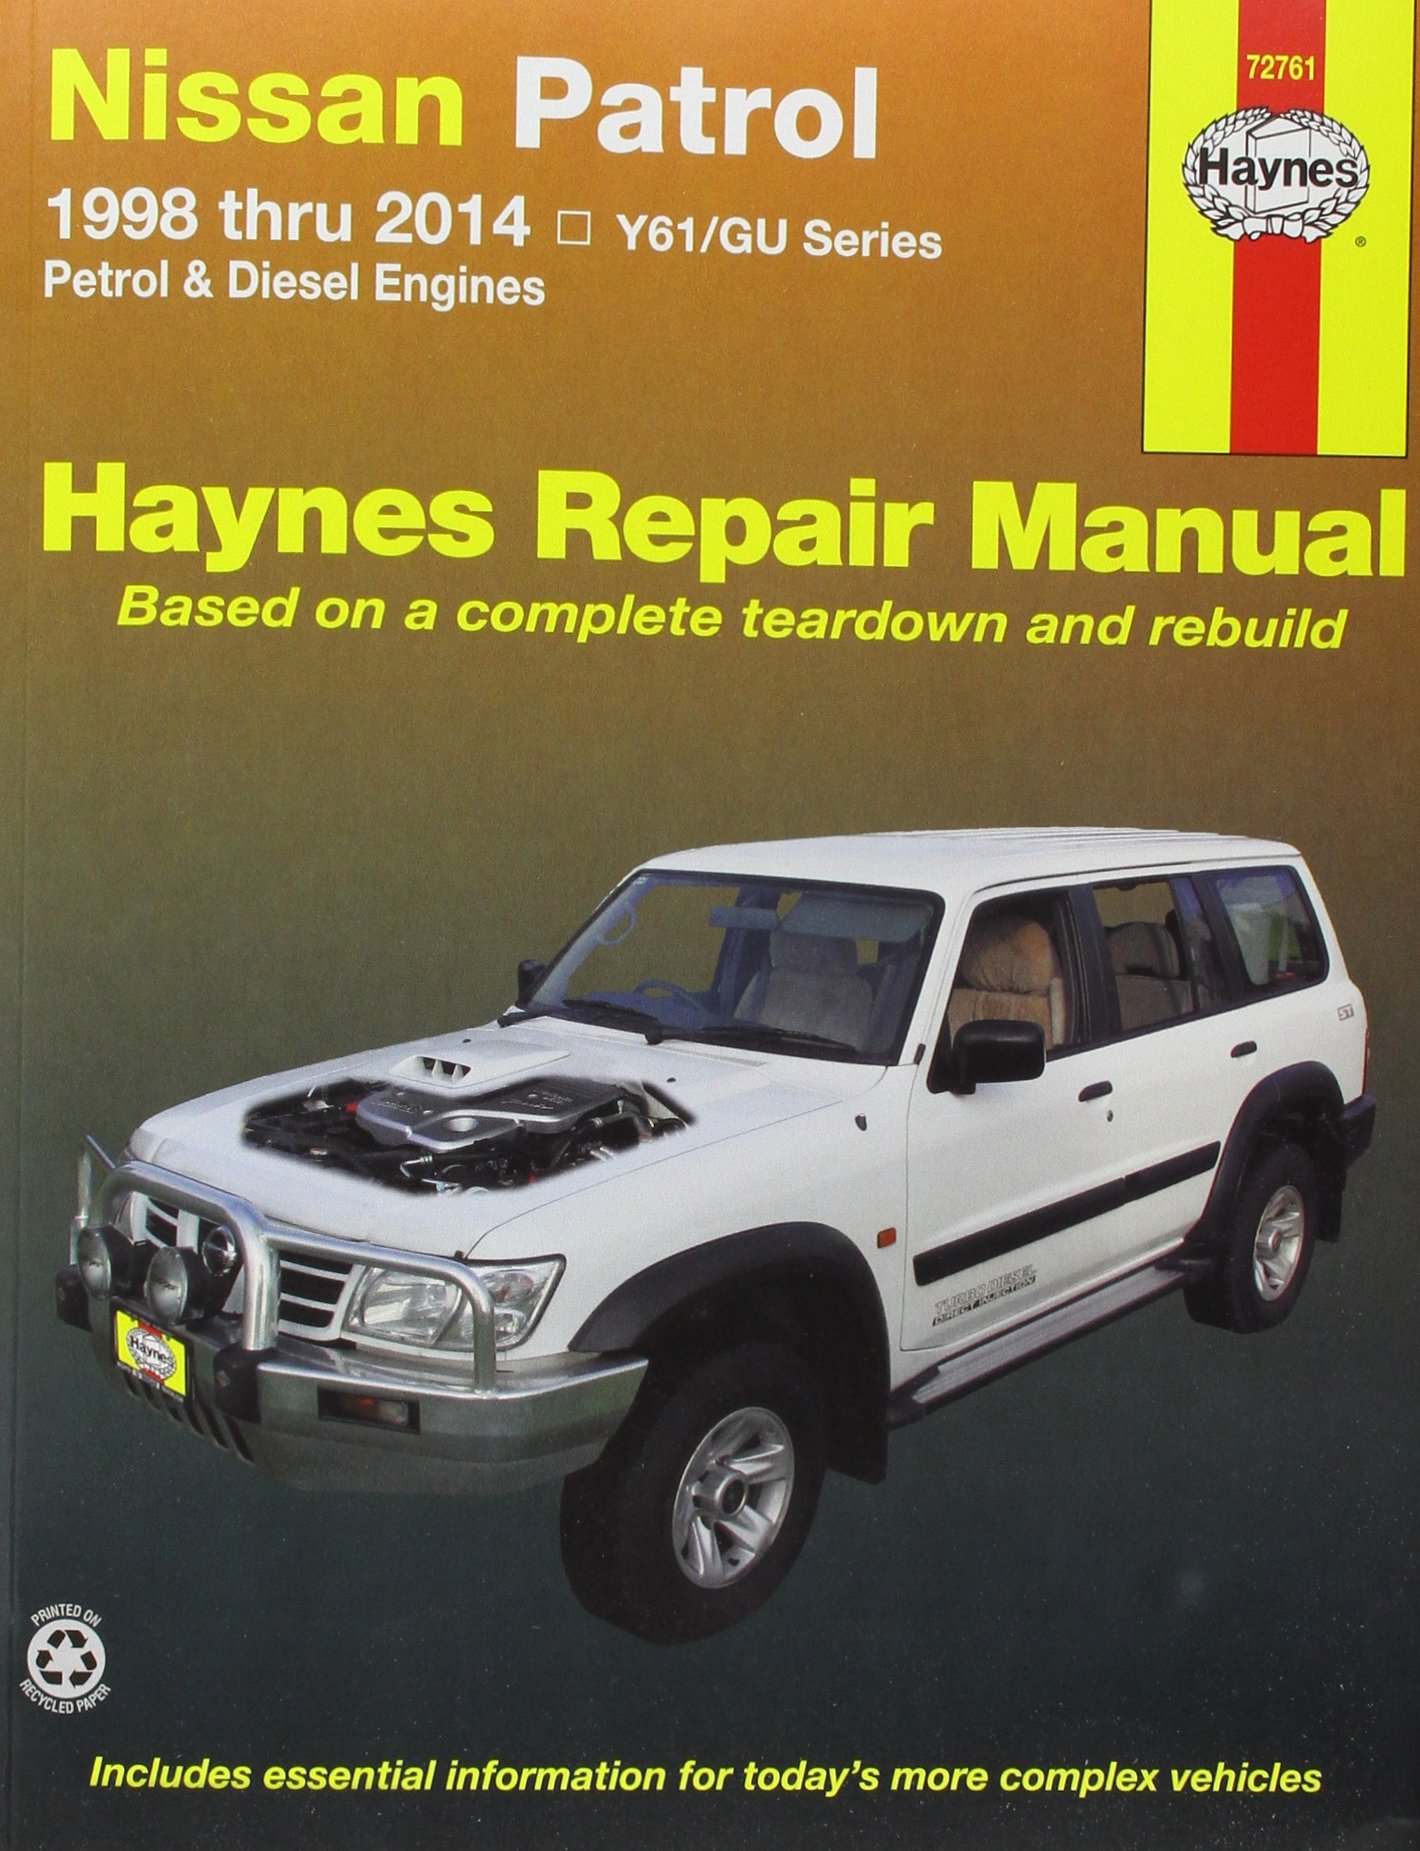 Nissan patrol aus 98 14 9781620921142 amazon books fandeluxe Gallery